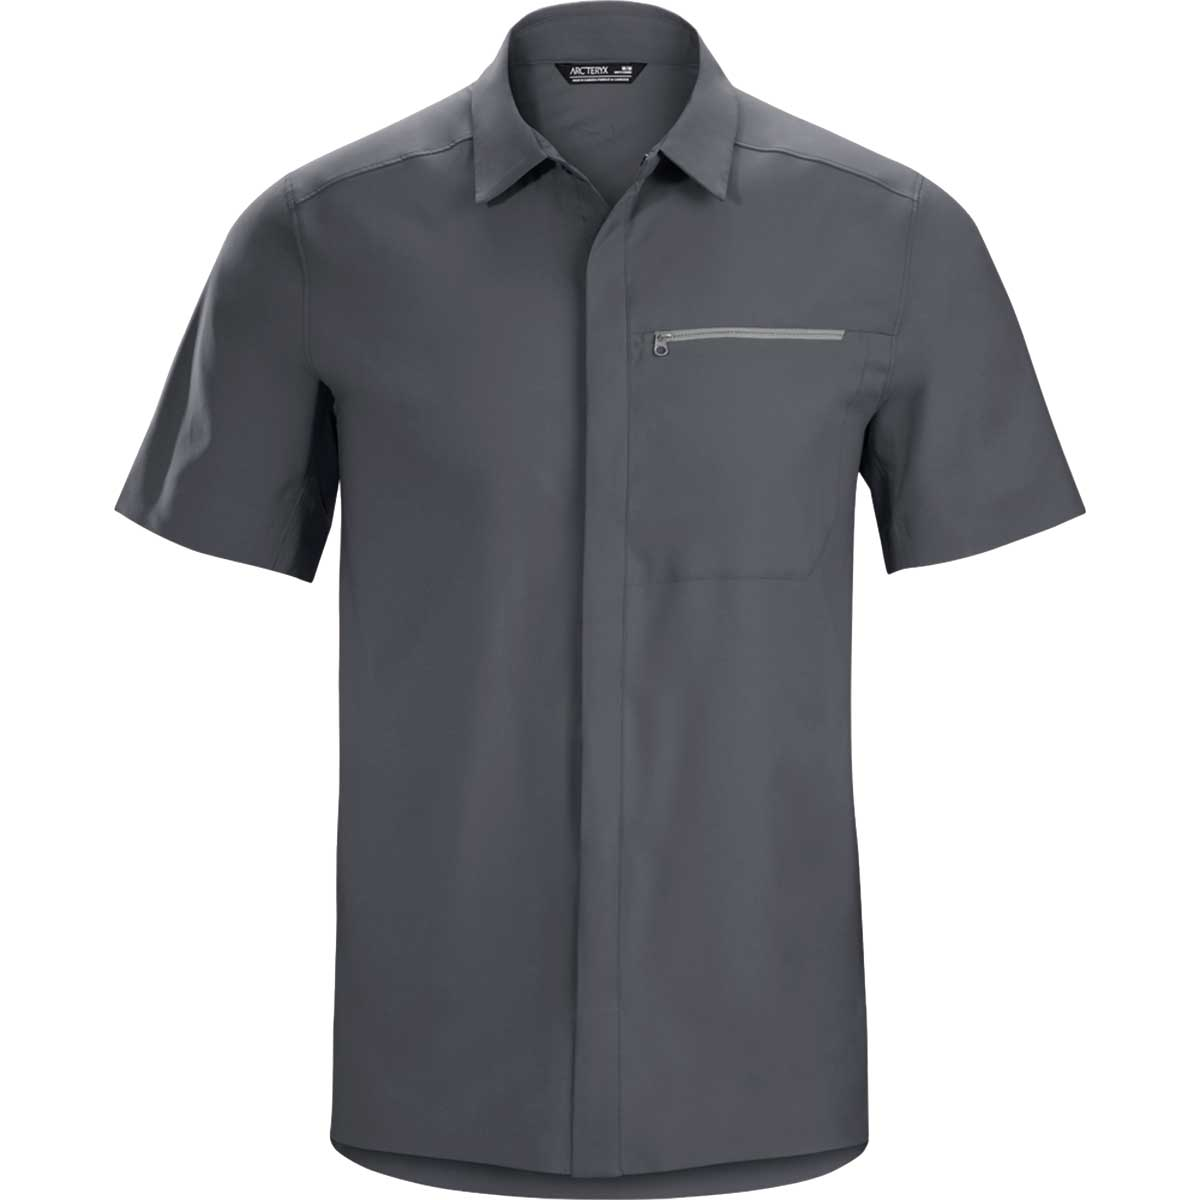 Arcteryx men's Skyline Short Sleeve Shirt in Cinder front view